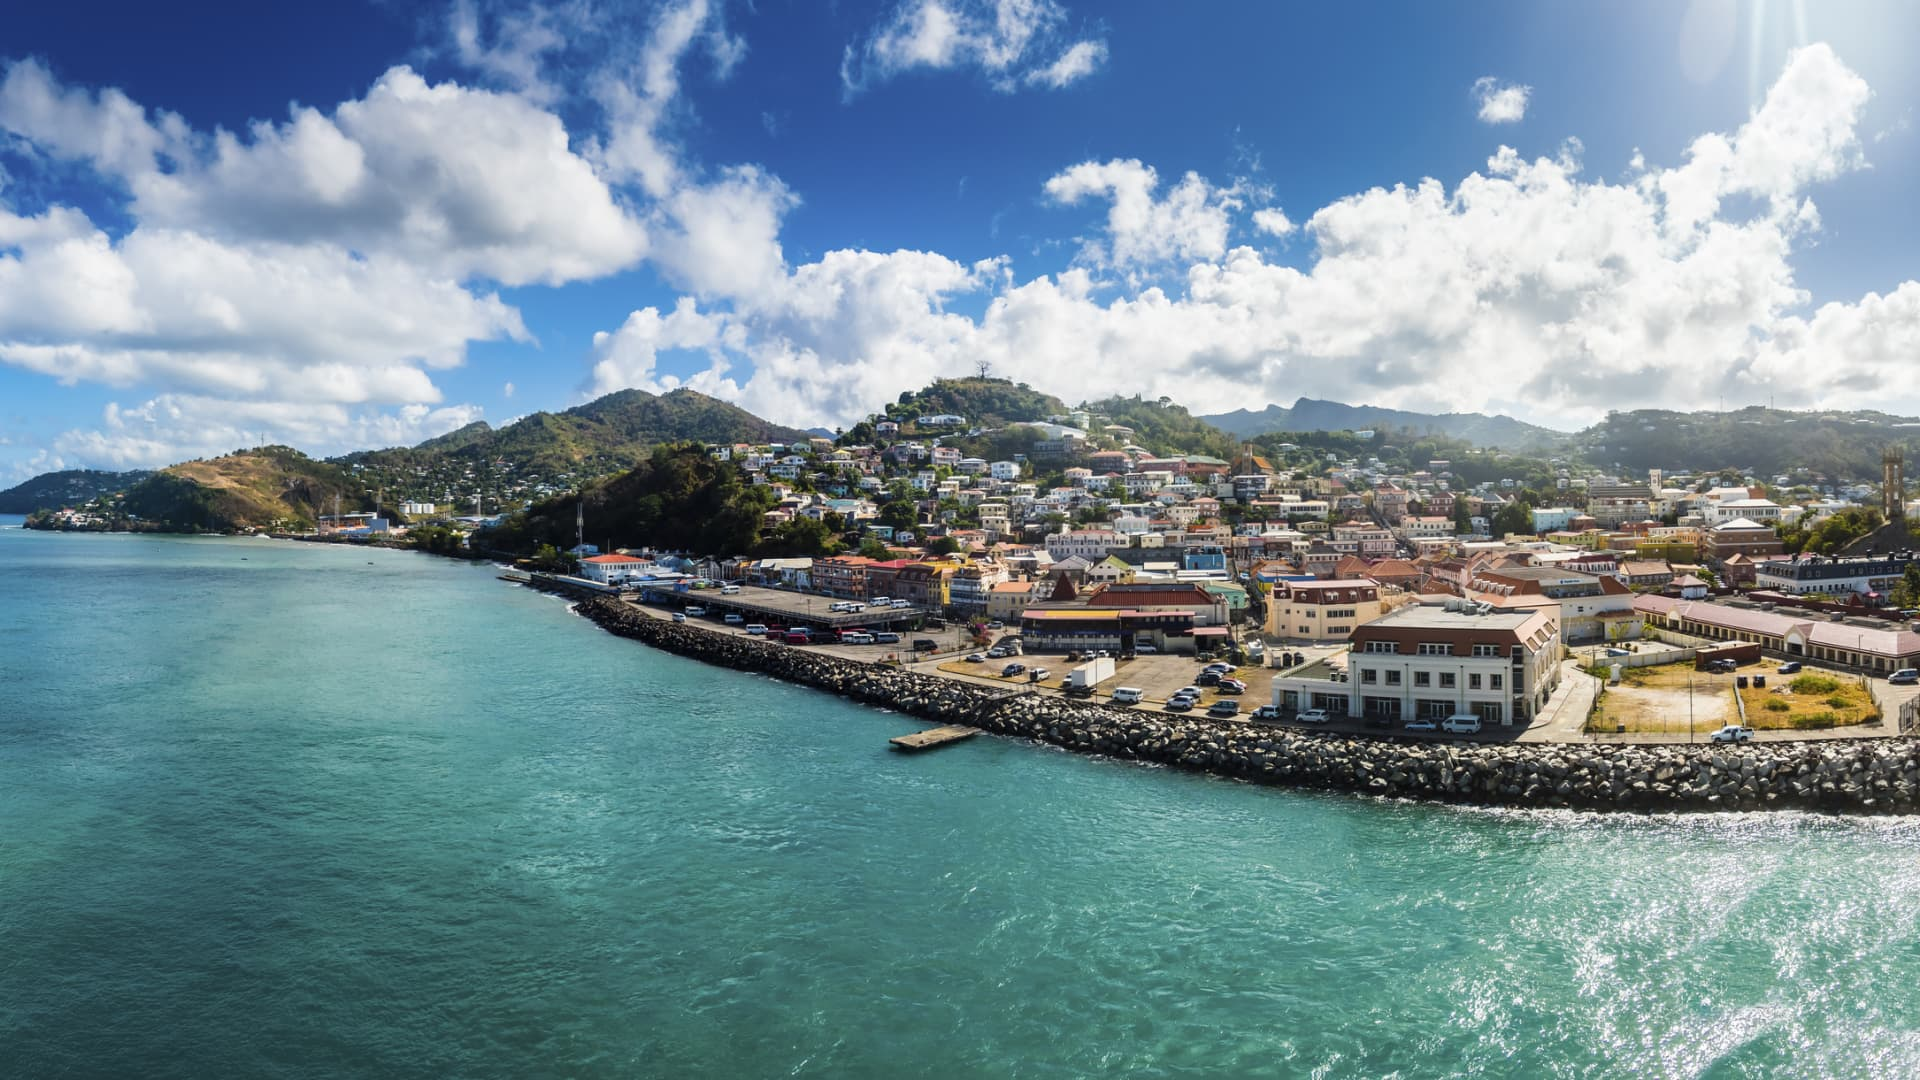 Travelers to Grenada should expect to quarantine for about 7 days.